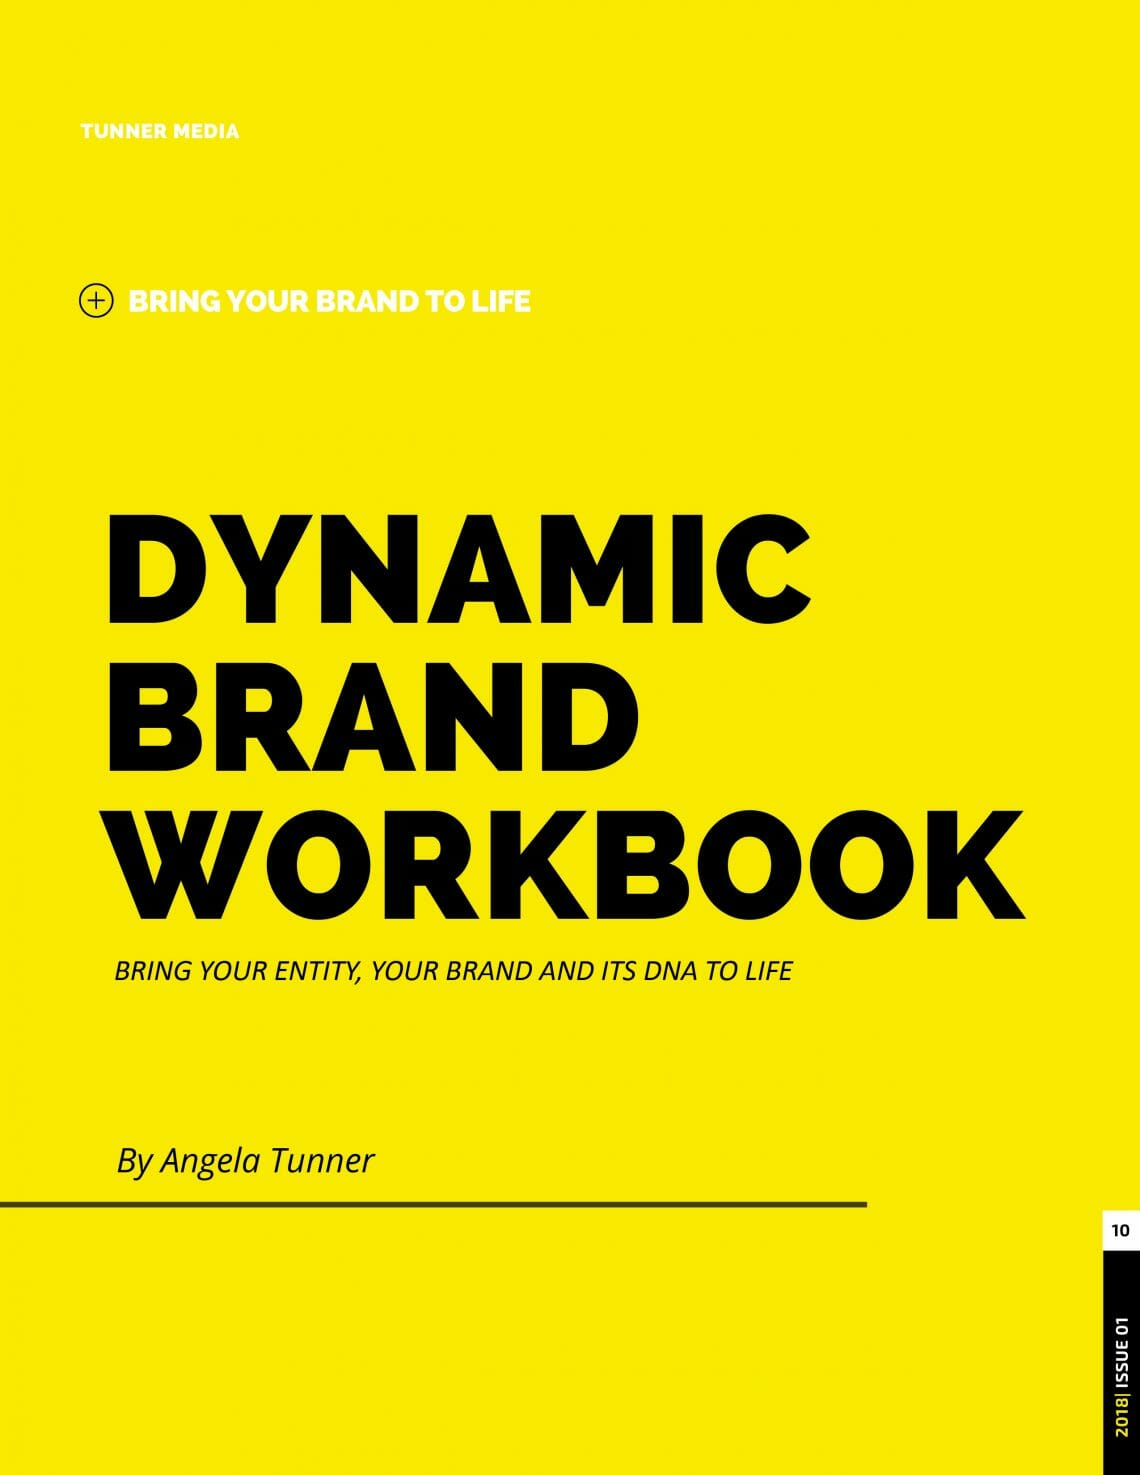 dynamicbrand workbook cover DynamicBrand Workbook: the book to develop brand entity and voice - EAT LOVE SAVOR International luxury lifestyle magazine, bookazines & luxury community